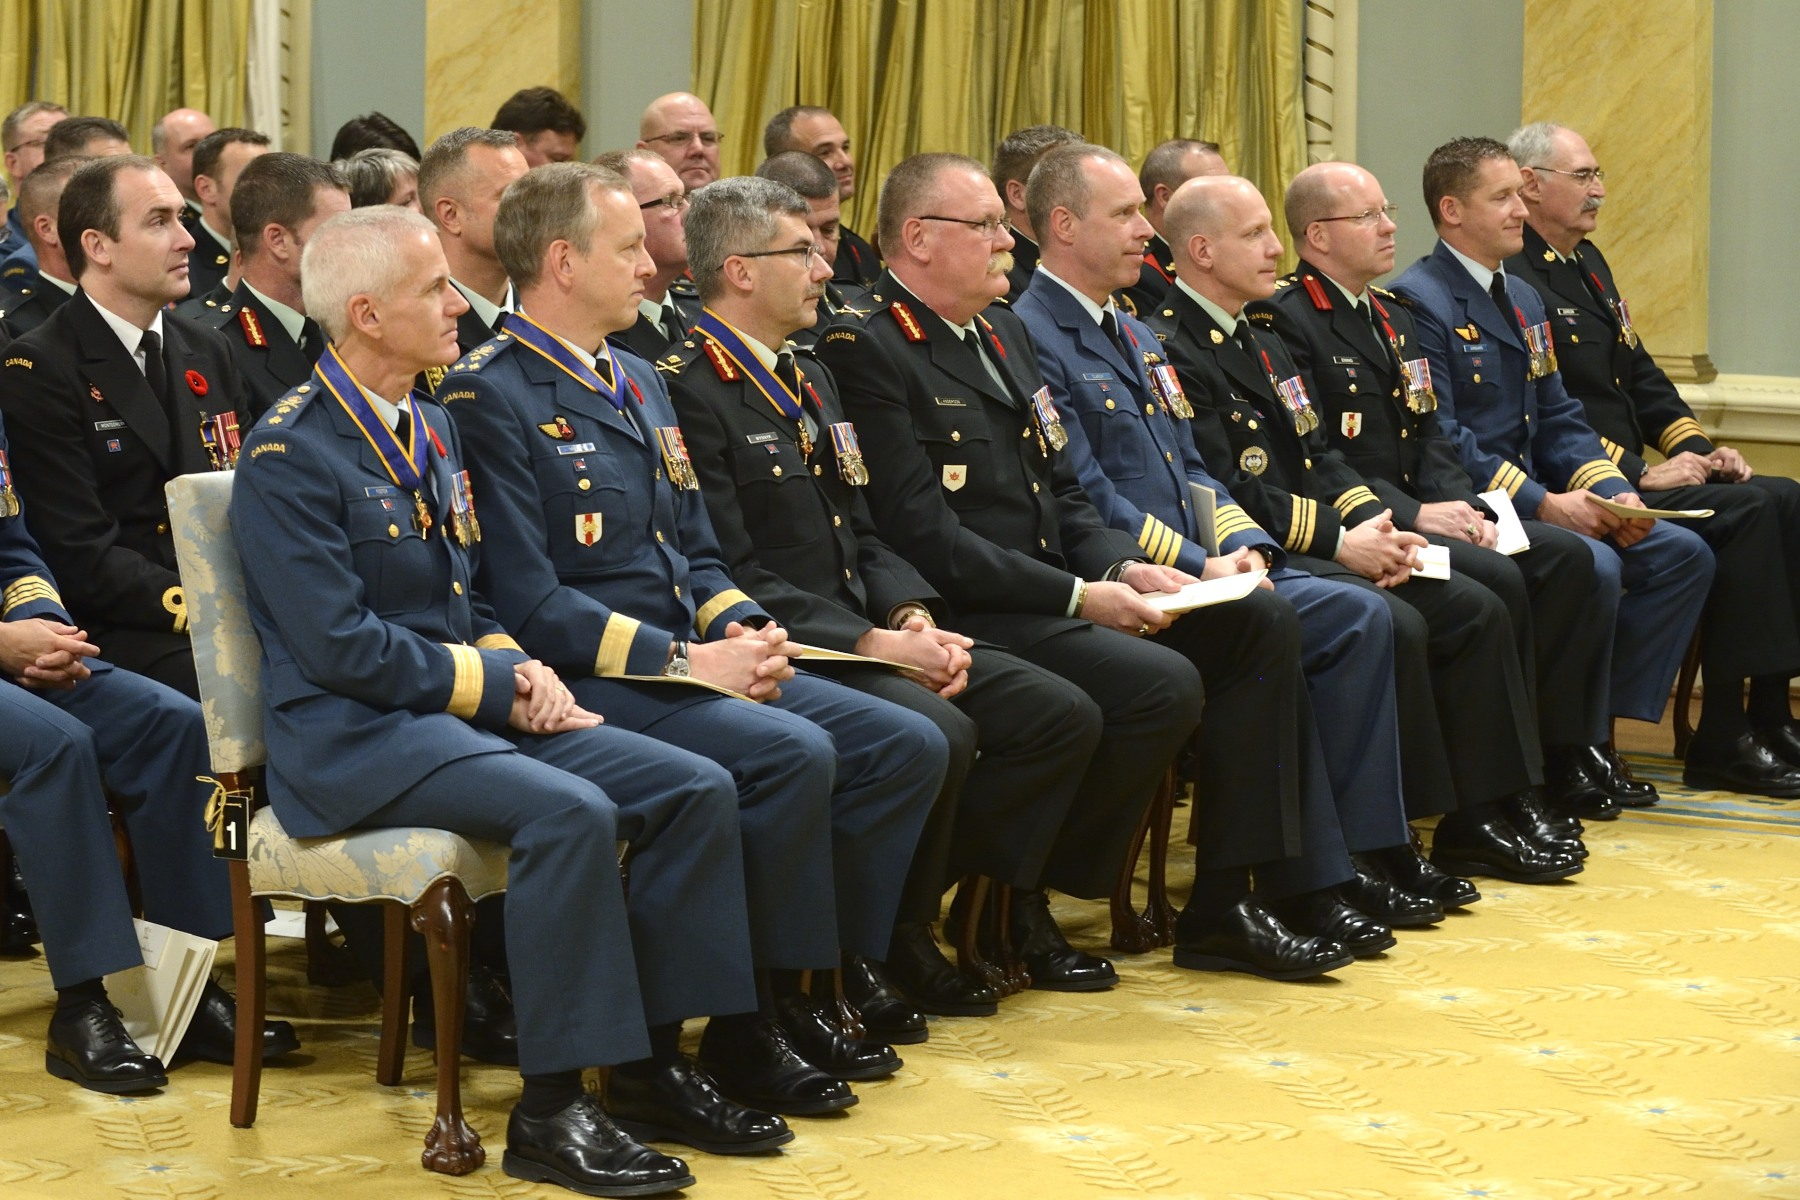 His Excellency the Right Honourable David Johnston, Governor General and Commander-in-Chief of Canada, presided over an Order of Military Merit investiture ceremony at Rideau Hall on November 7, 2014. He bestowed the honour on 50 recipients.